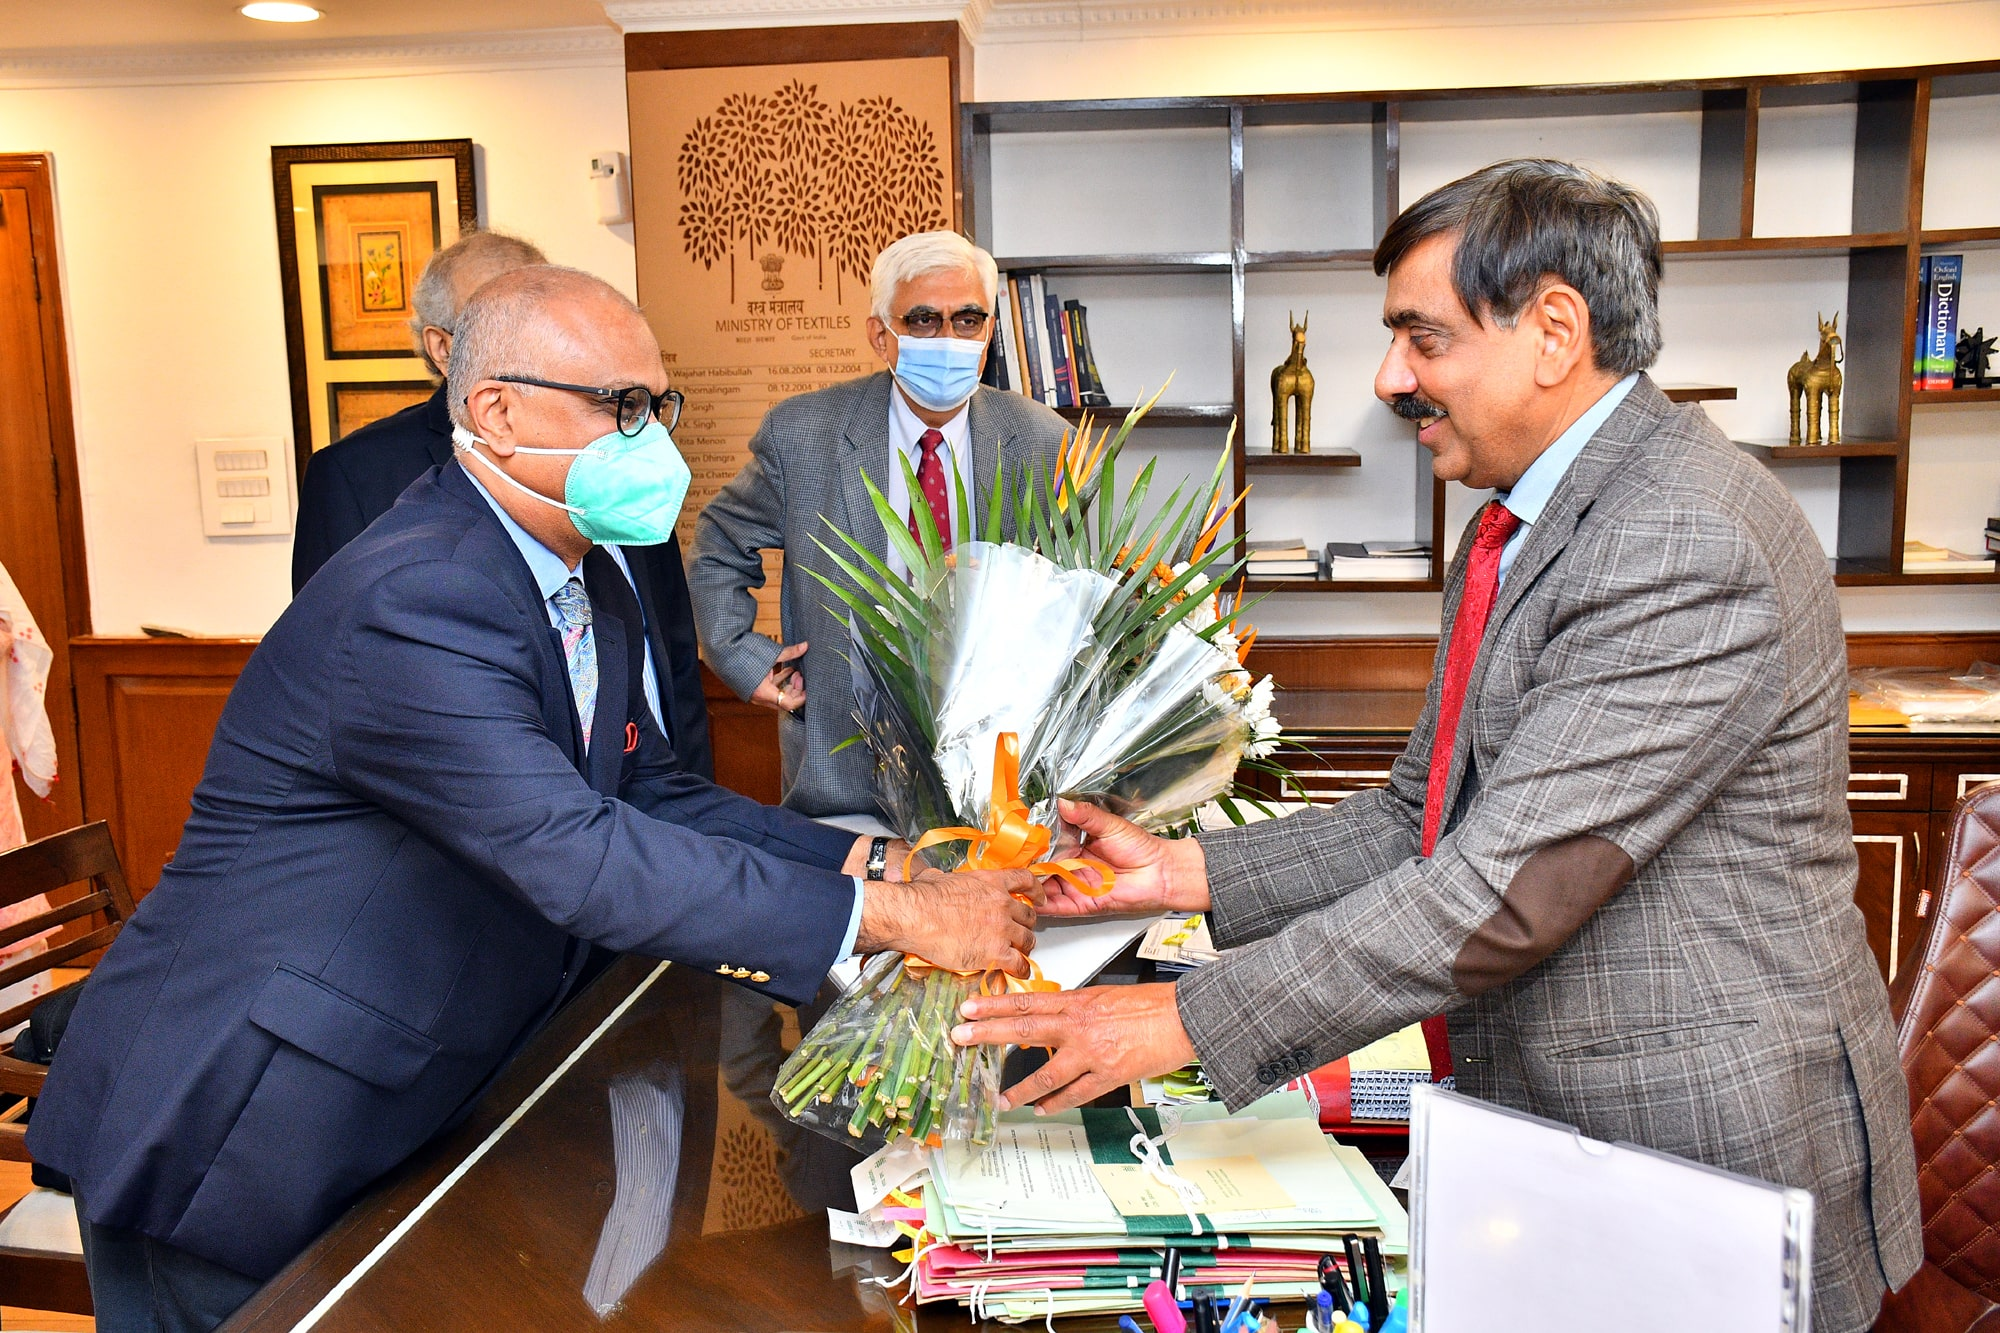 TEXPROCIL Delegation meets Shri Upendra Prasad Singh, Secretary, Textiles at his office in New Delhi on Feb 9, 2021